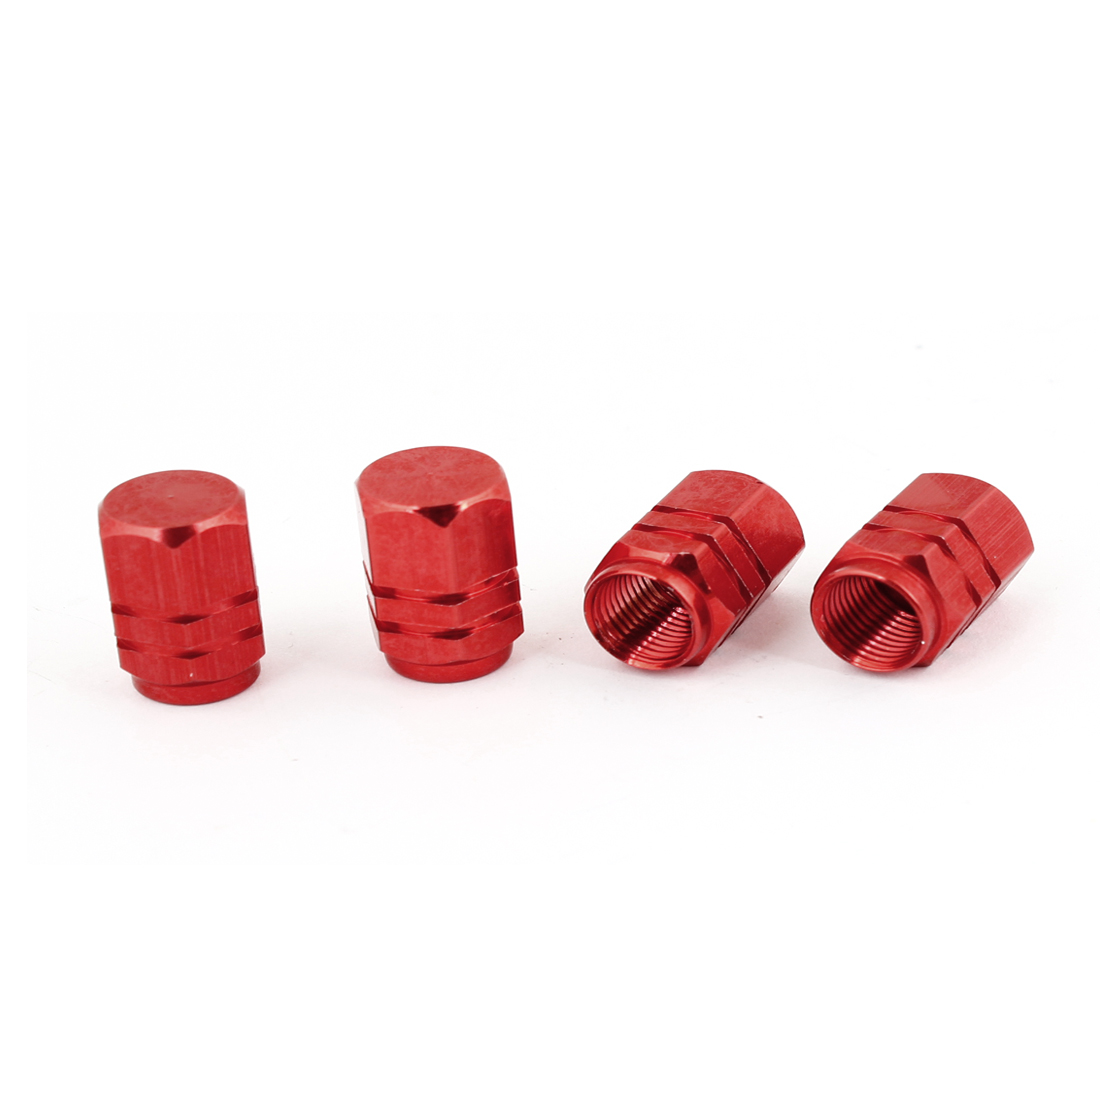 4pcs Hexagon Tyre Tire Valve Stems Caps Cover Red for Vehicle Car